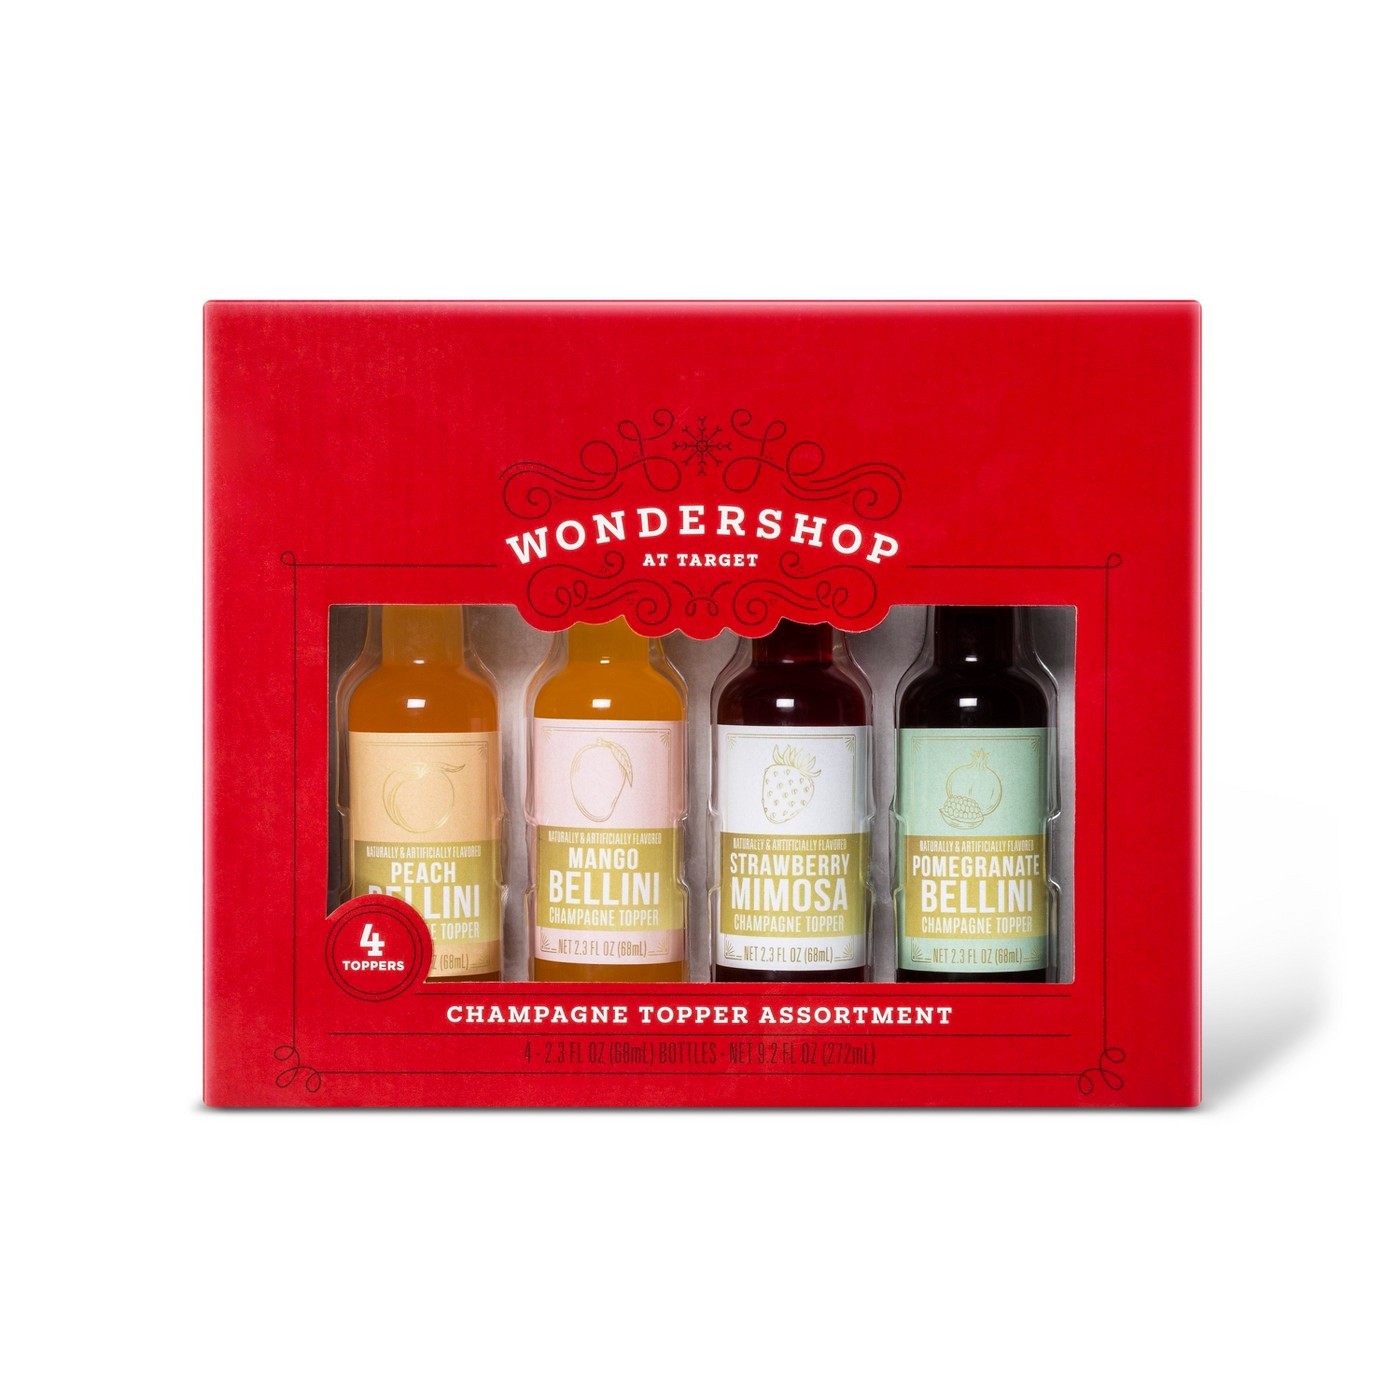 Wondershop Champagne Topper Assortment, red box filled with four bottles for mimosas and bellinis from Target